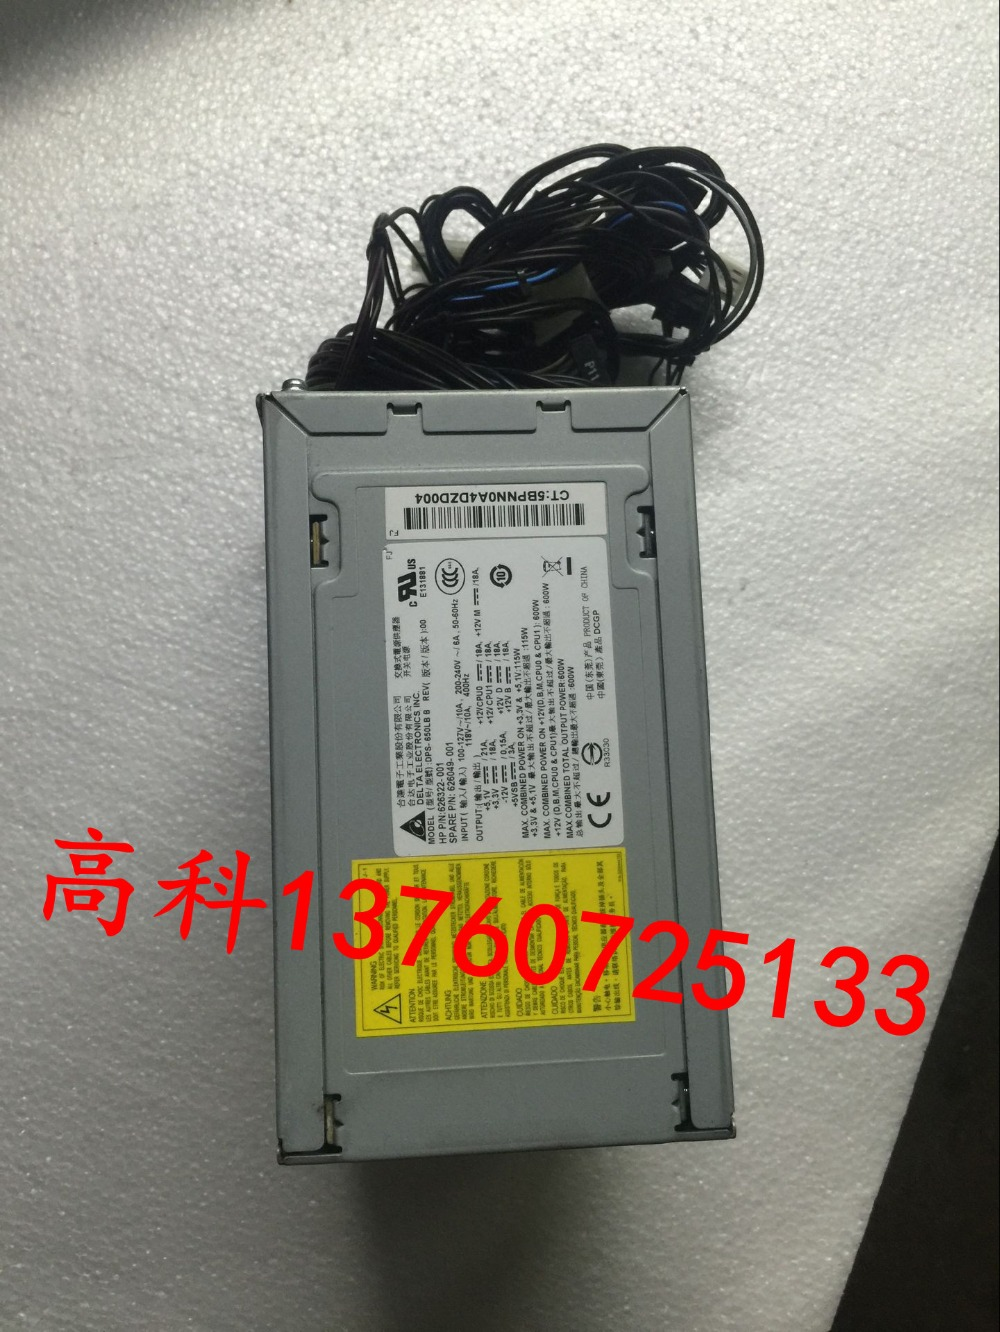 Free shipping New HP Z400 XW4600 Power Supply DPS-475CB-1 A 468930-001/480720-001Free shipping New HP Z400 XW4600 Power Supply DPS-475CB-1 A 468930-001/480720-001